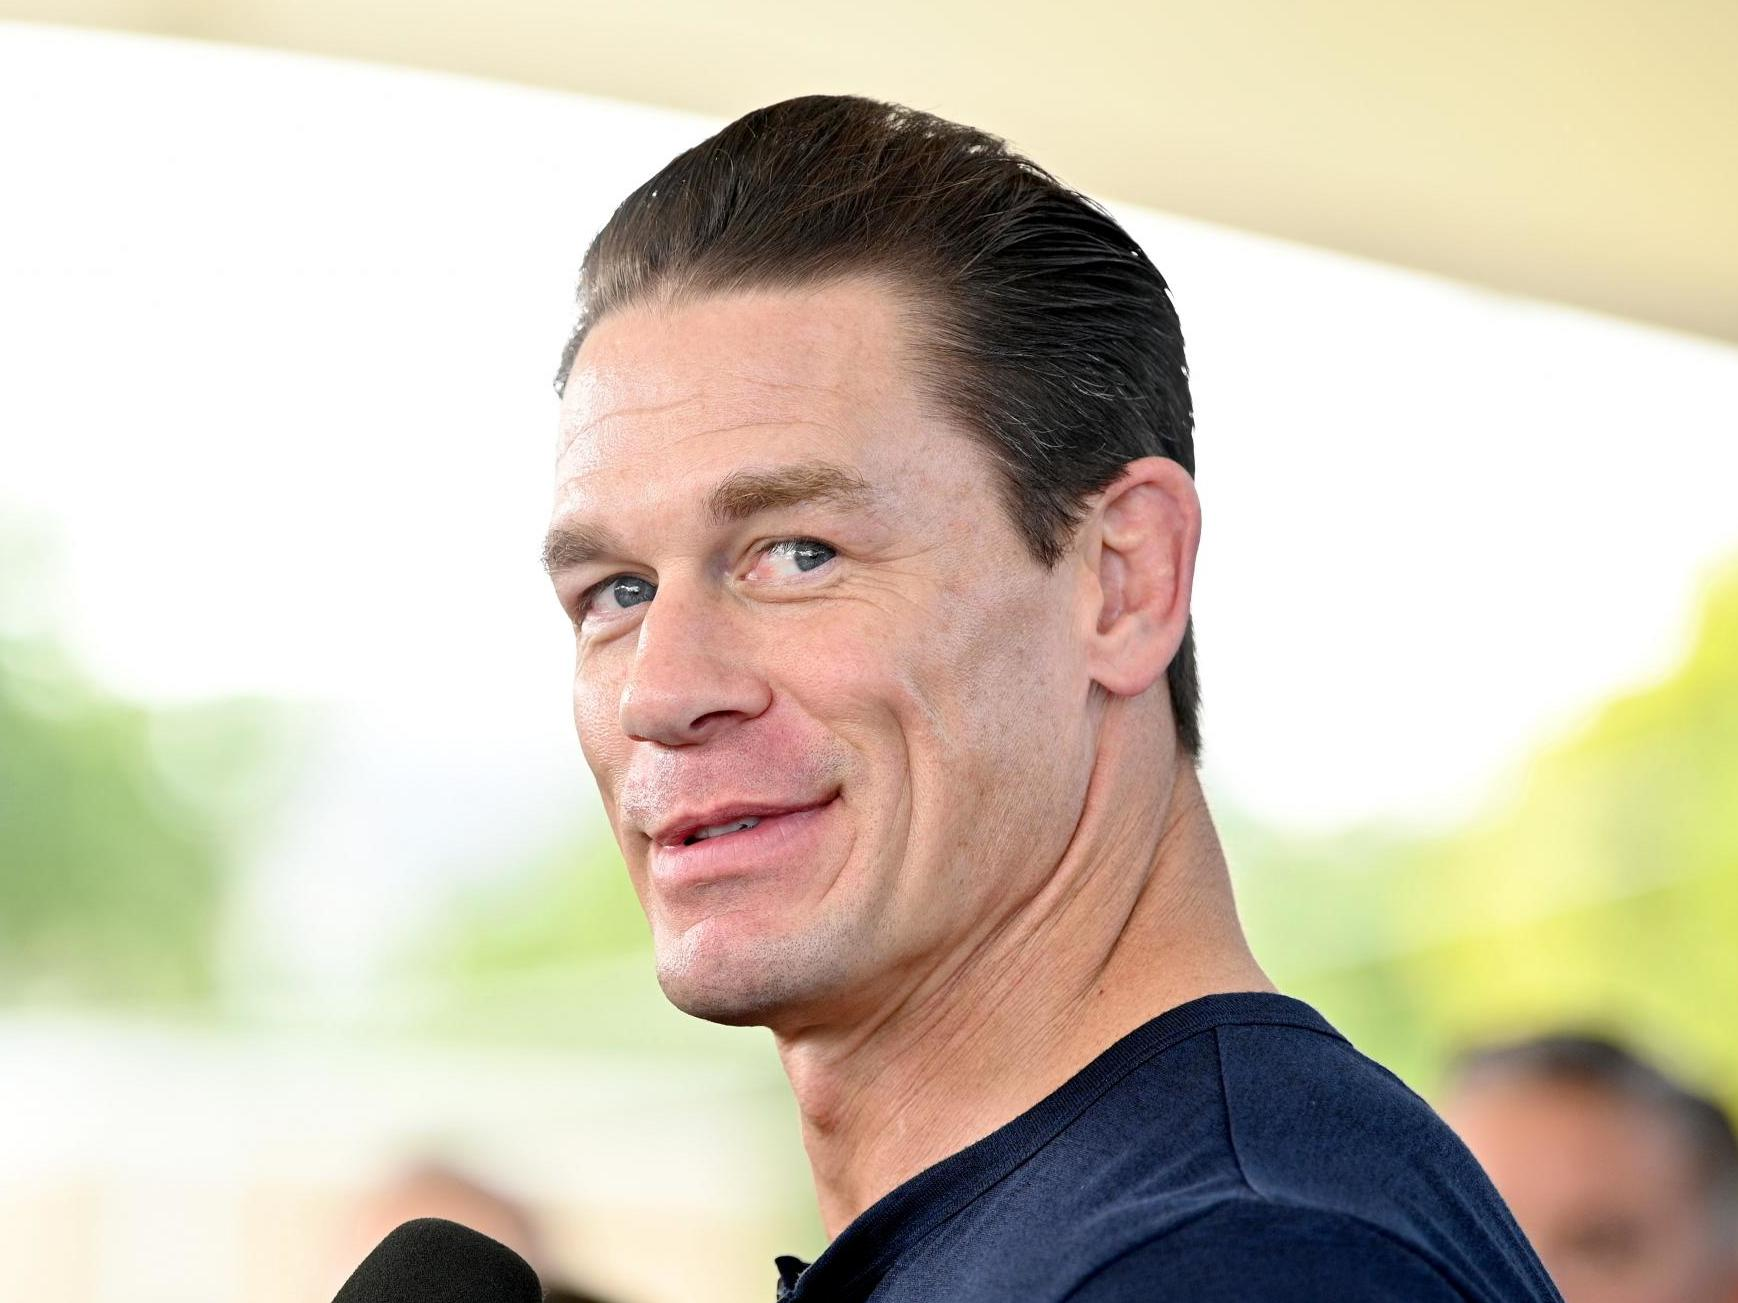 John Cena to star as 'Peacemaker' in Suicide Squad spin-off series at HBO Max